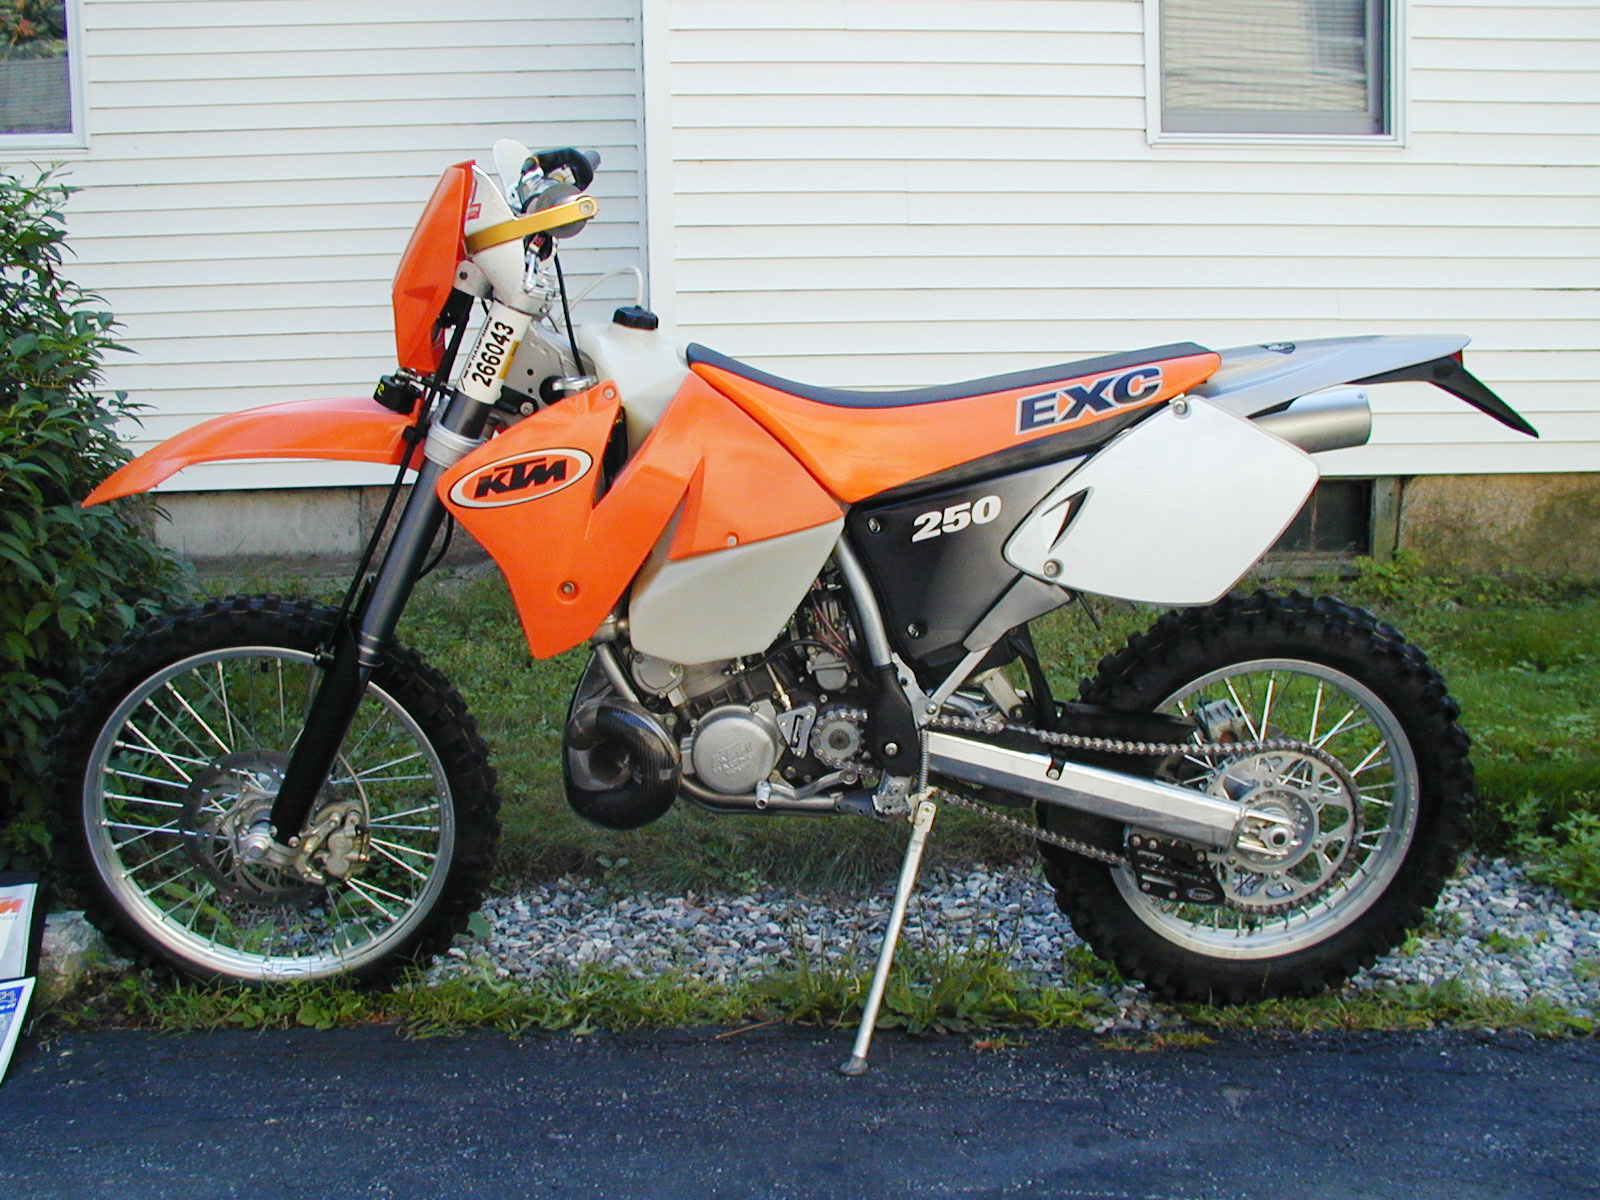 Fabulous 2001 Ktm 250 Exc Pics Specs And Information Caraccident5 Cool Chair Designs And Ideas Caraccident5Info